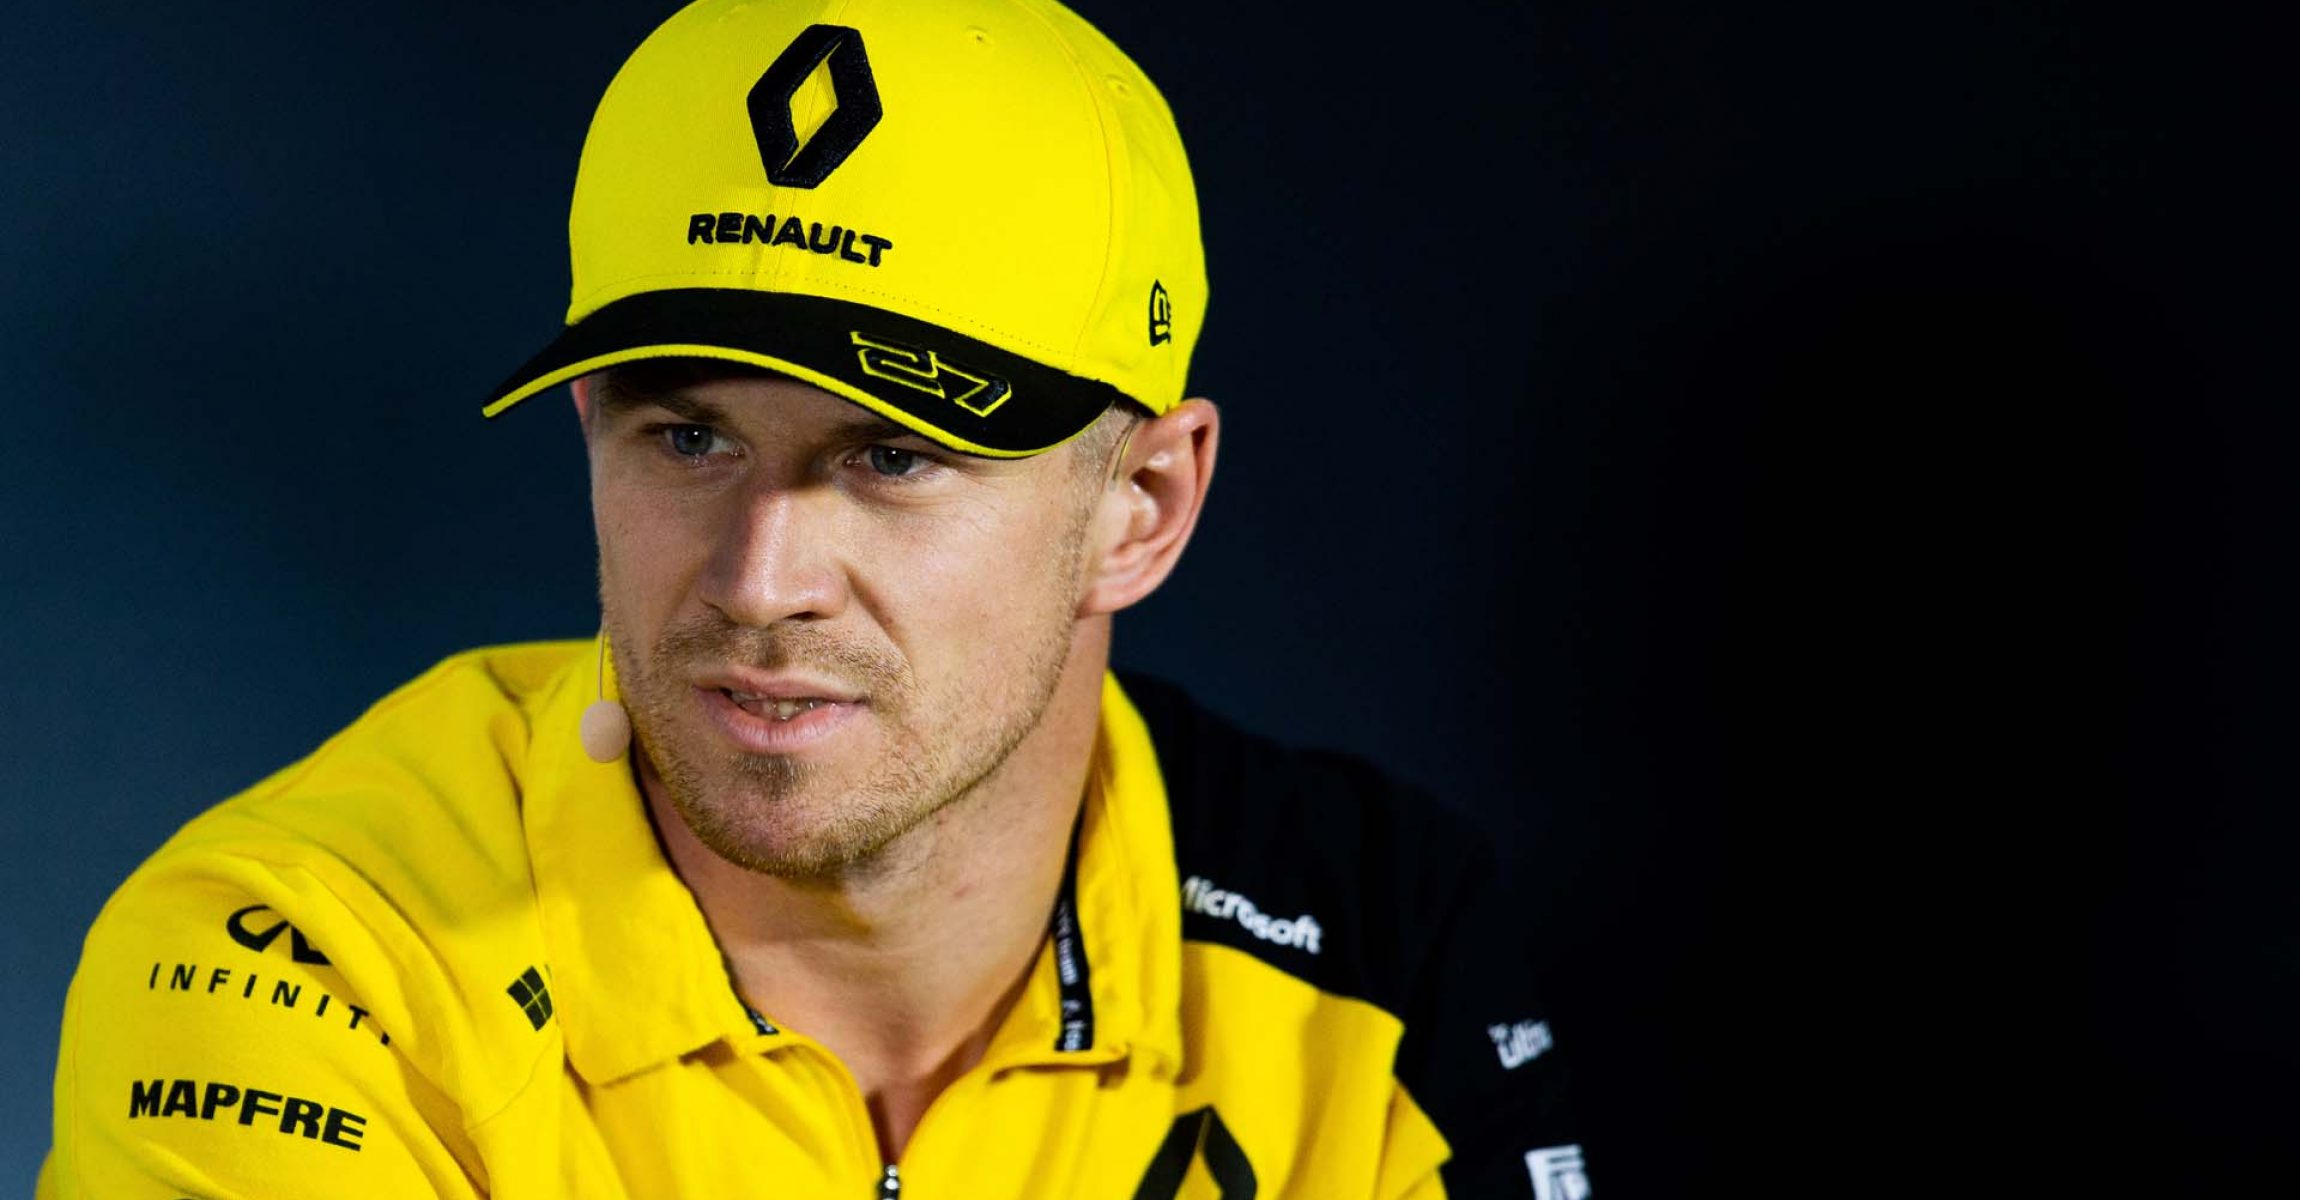 Nico Hülkenberg (GER) Renault F1 Team in the FIA Press Conference. Italian Grand Prix, Thursday 5th September 2019. Monza Italy.